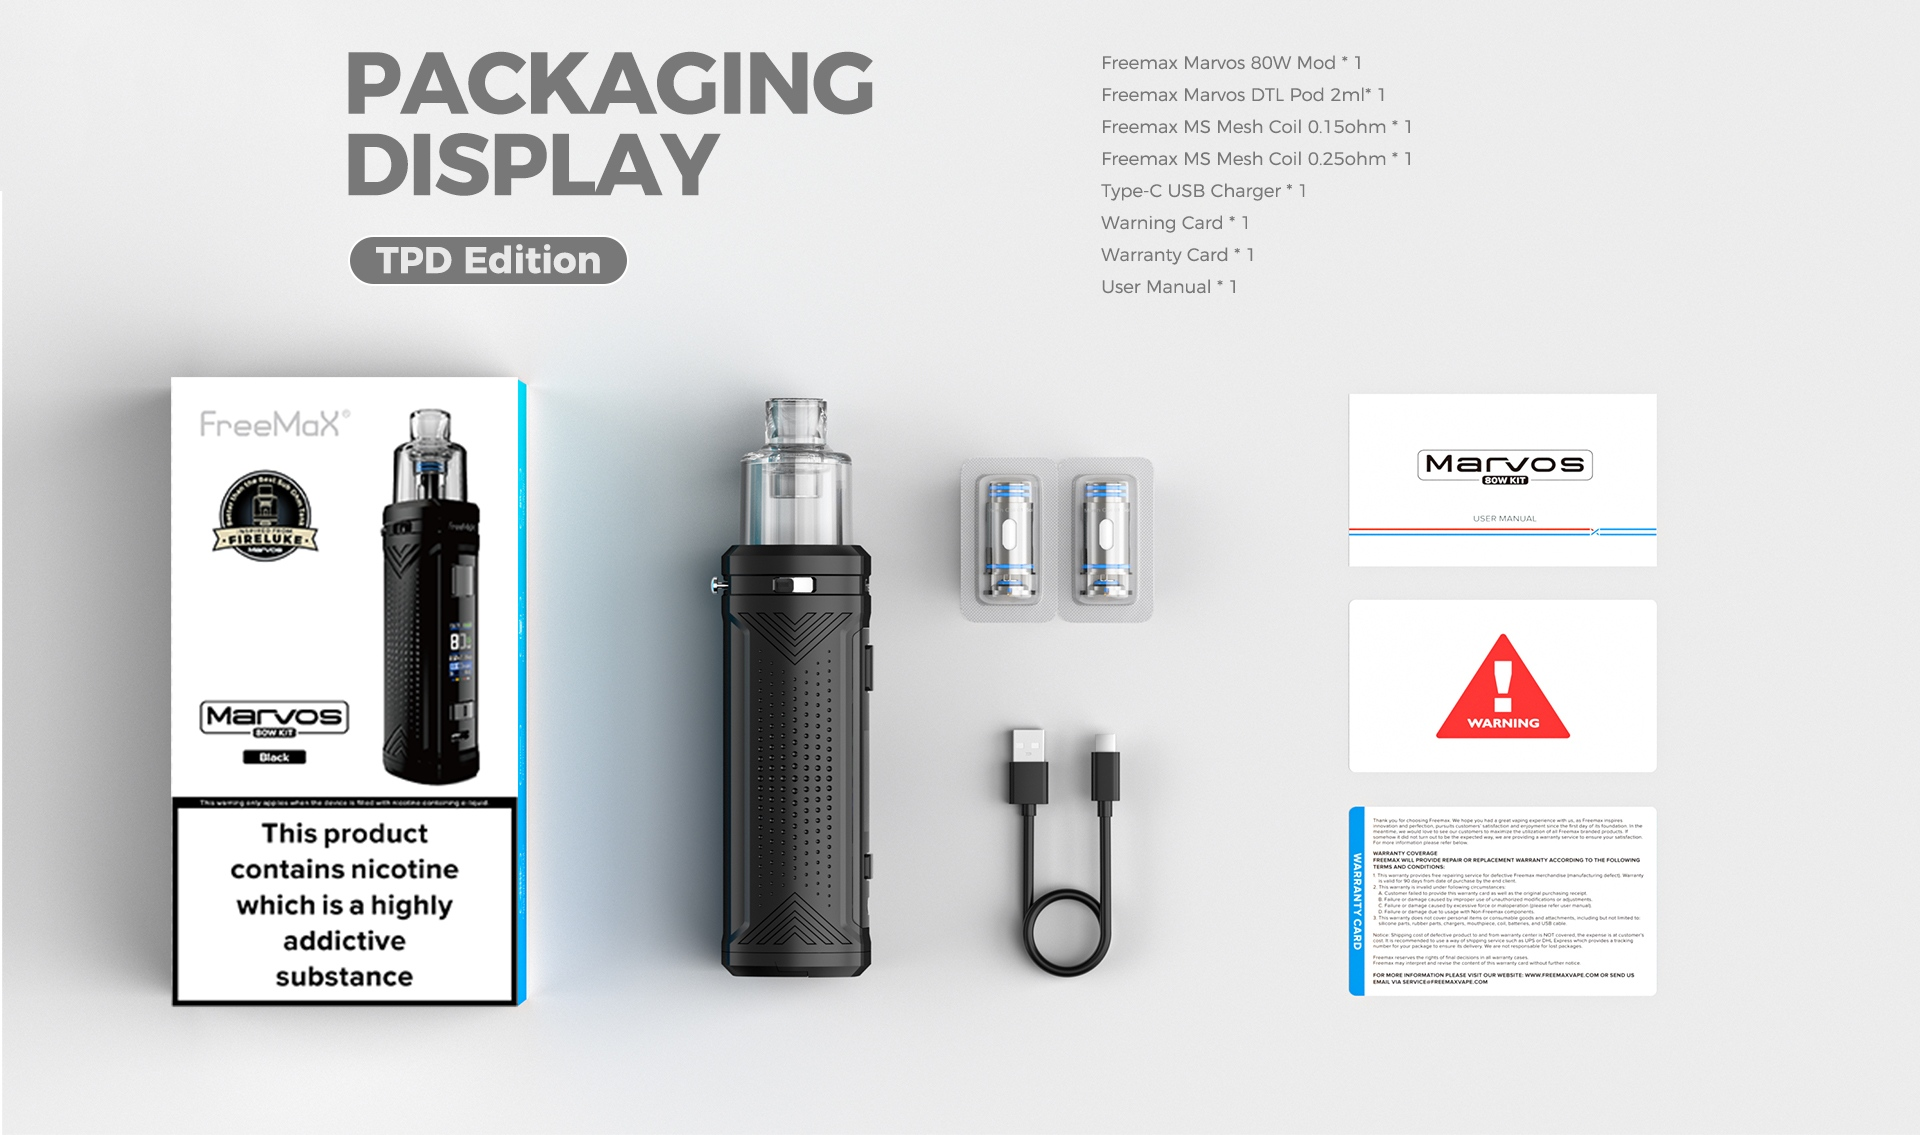 Marvos 80W - Packaging Display(TPD Edition)